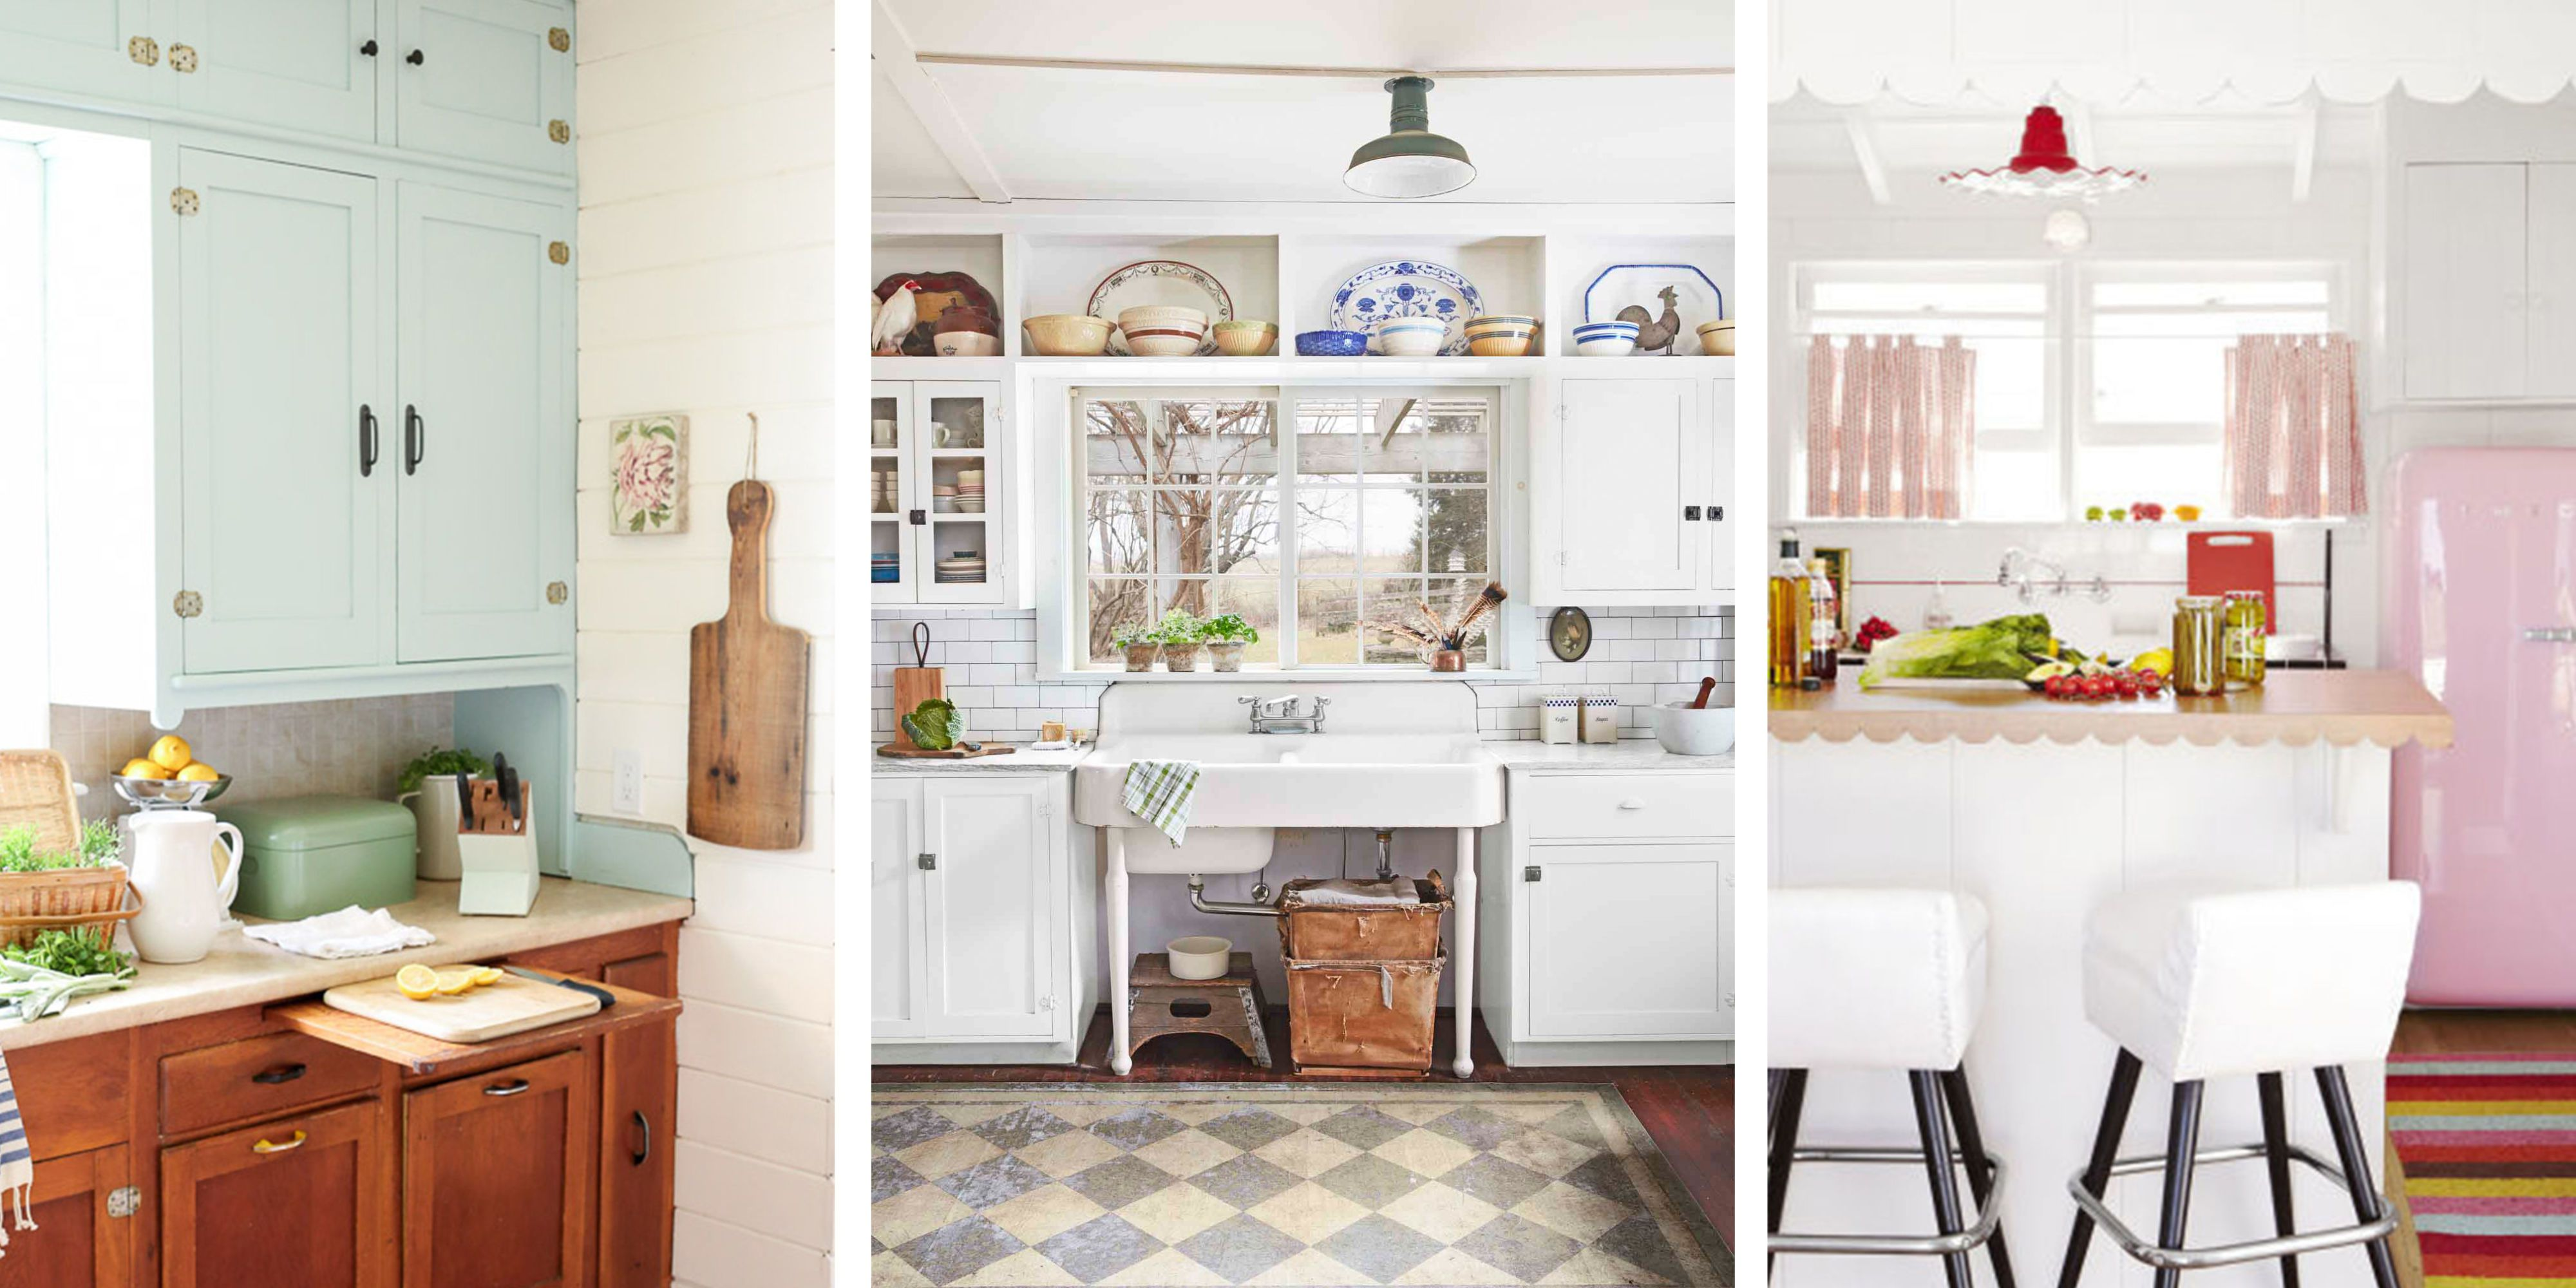 Vintage Kitchen: Artistic And Beautiful